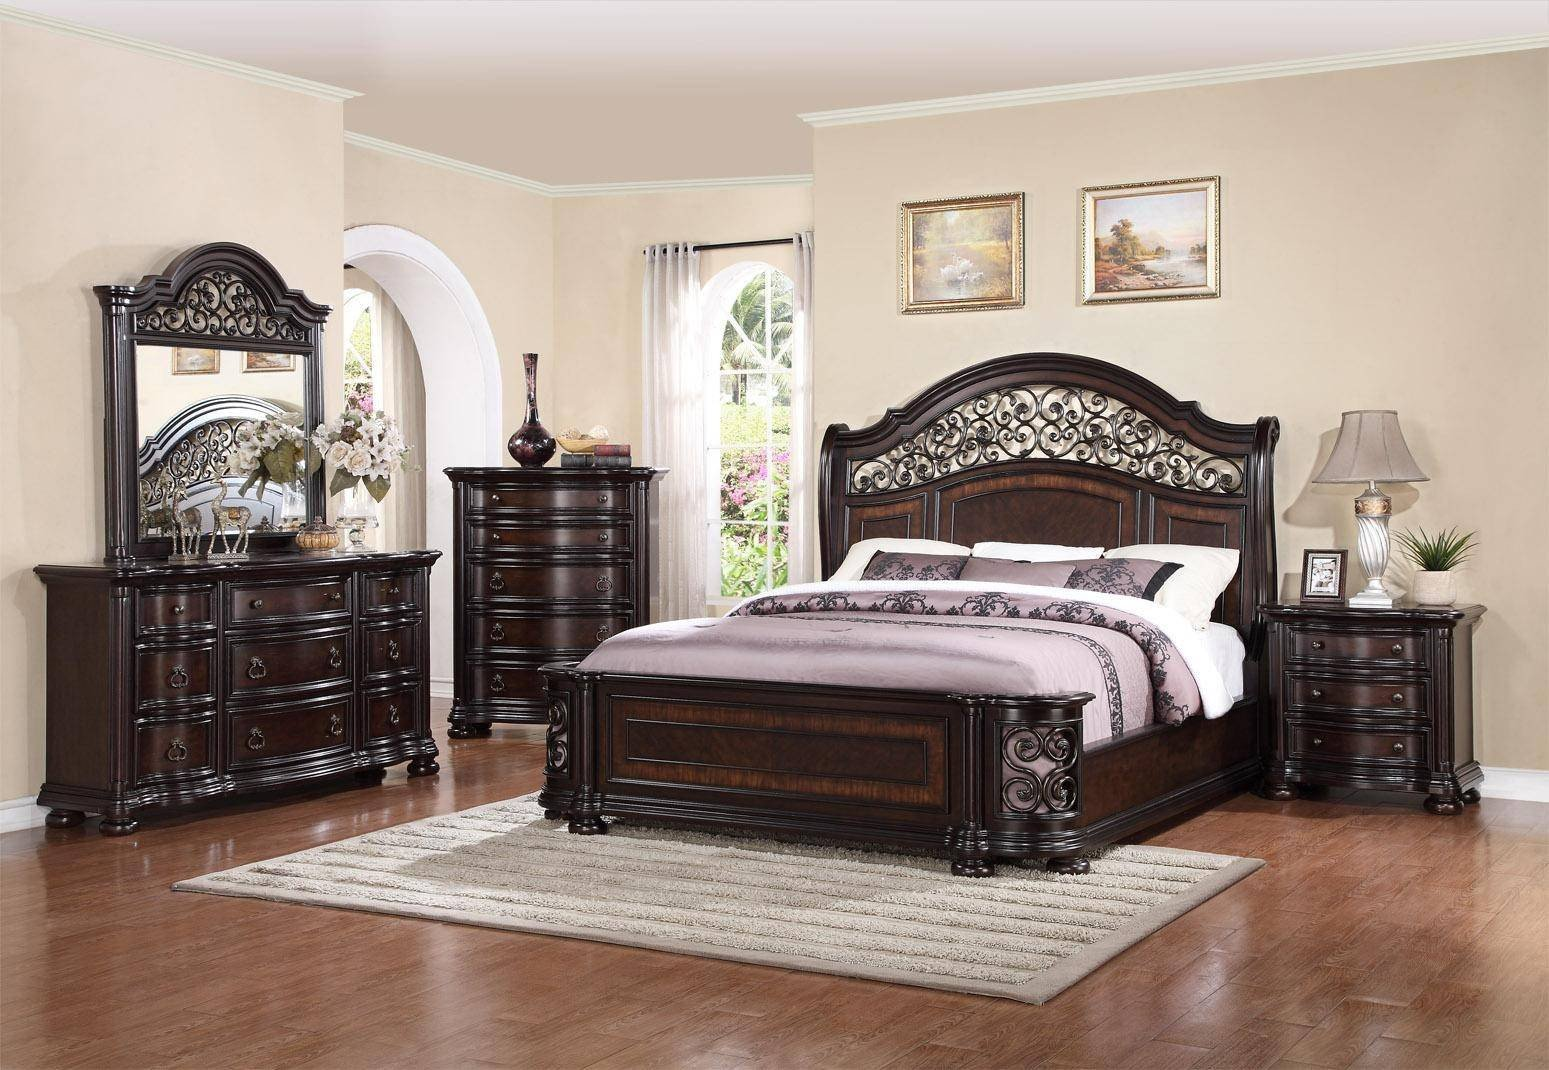 California King Size Bedroom Furniture Set Elegant Mcferran B366 Allison Espresso Finish solid Hardwood